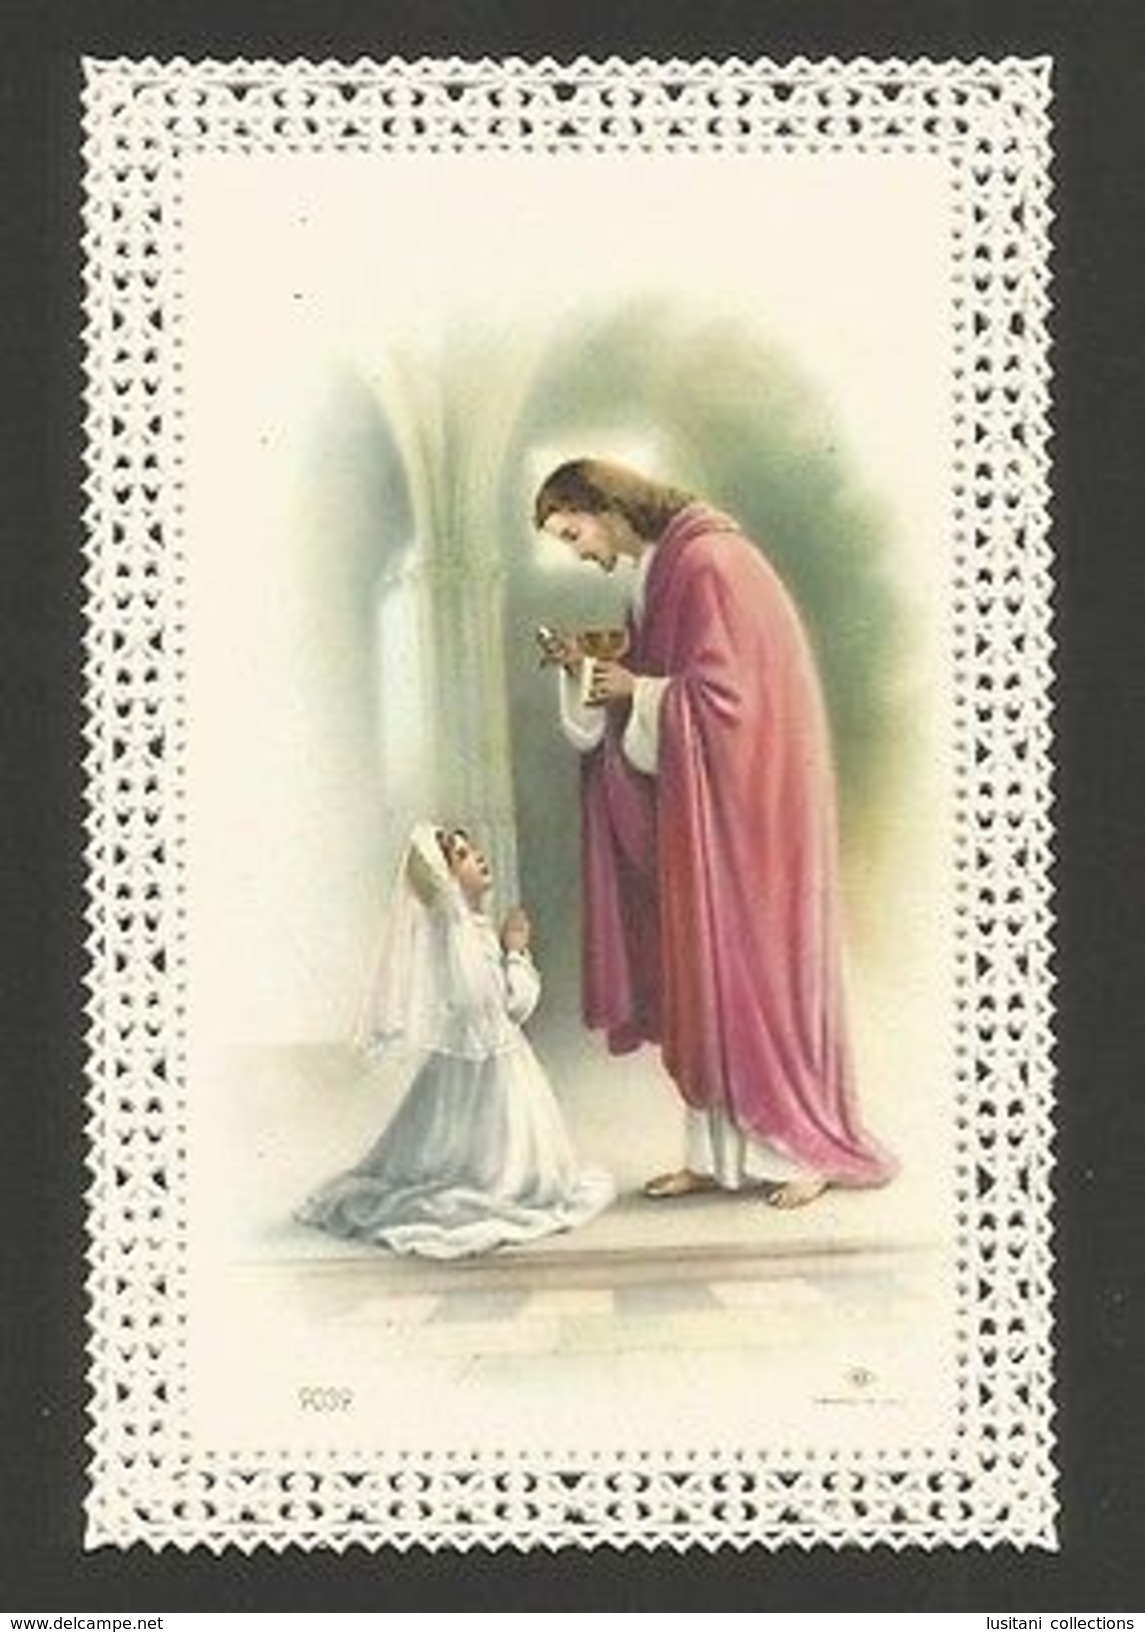 Antique HOLY CARD Vintage Religious Canivet Lace 1st Communion Girl & JESUS Z1 - Other Collections